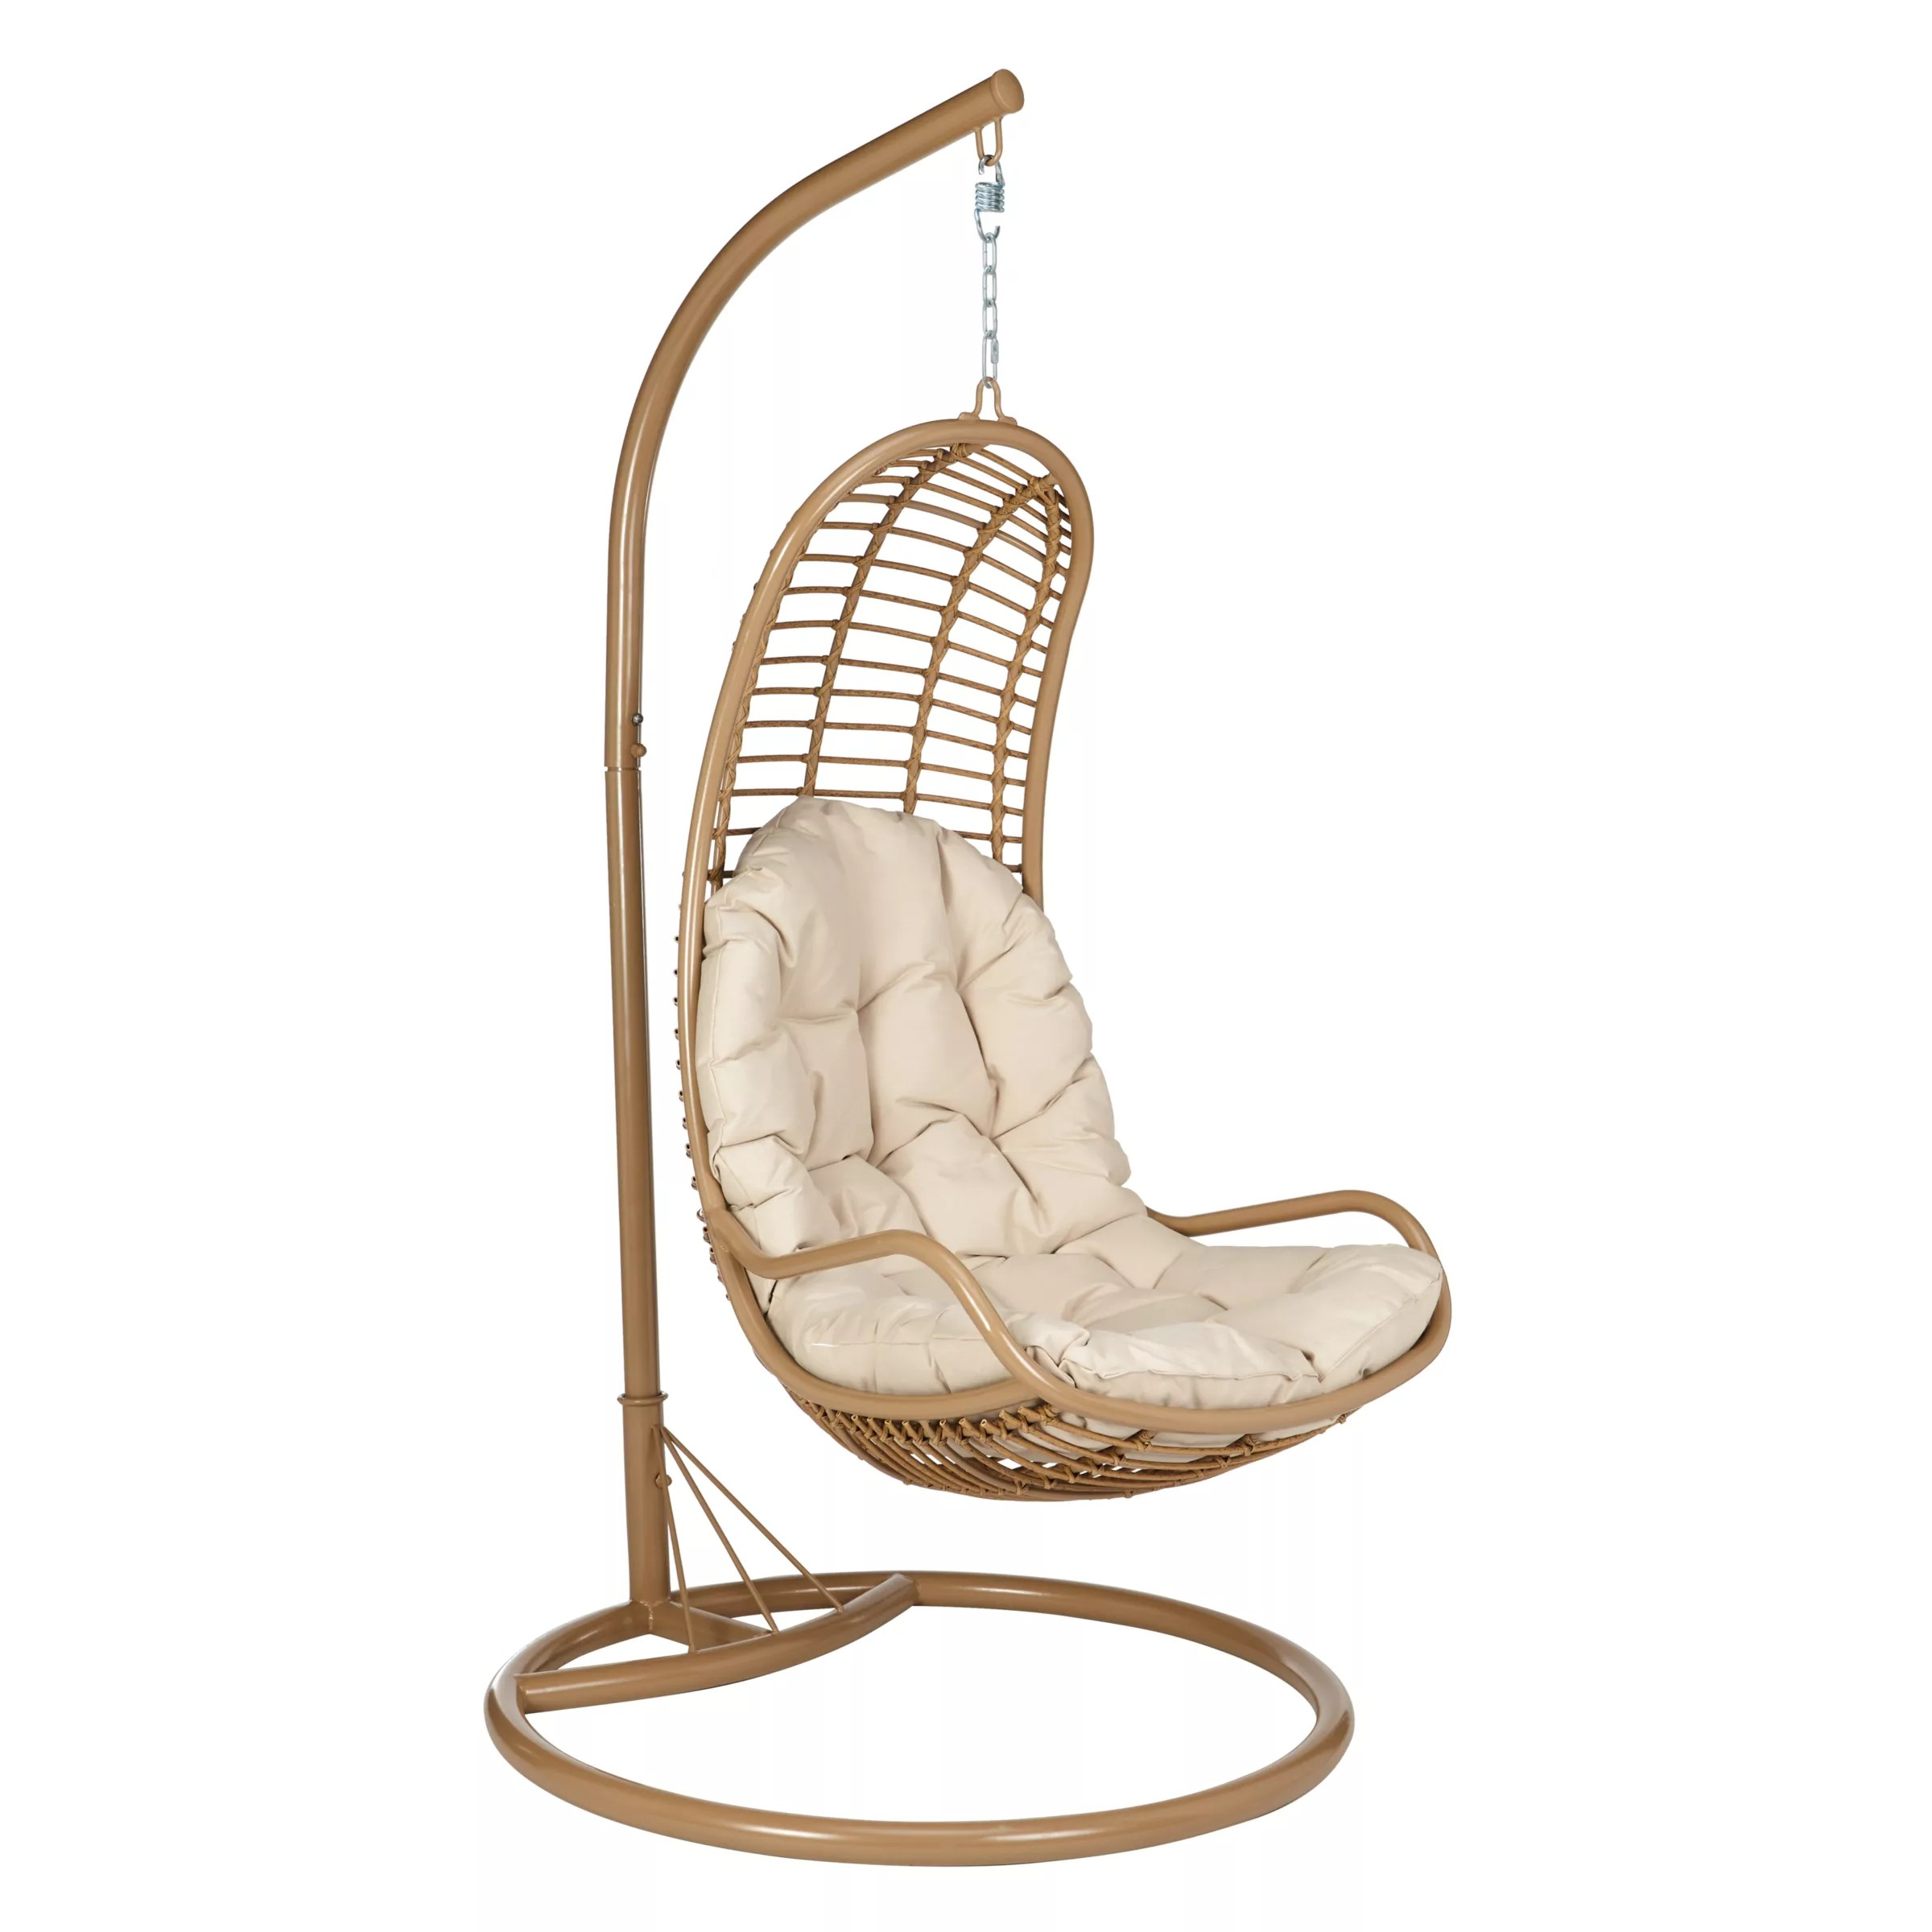 Cabana Chair John Lewis Cabana Hanging Pod Garden Chair At John Lewis